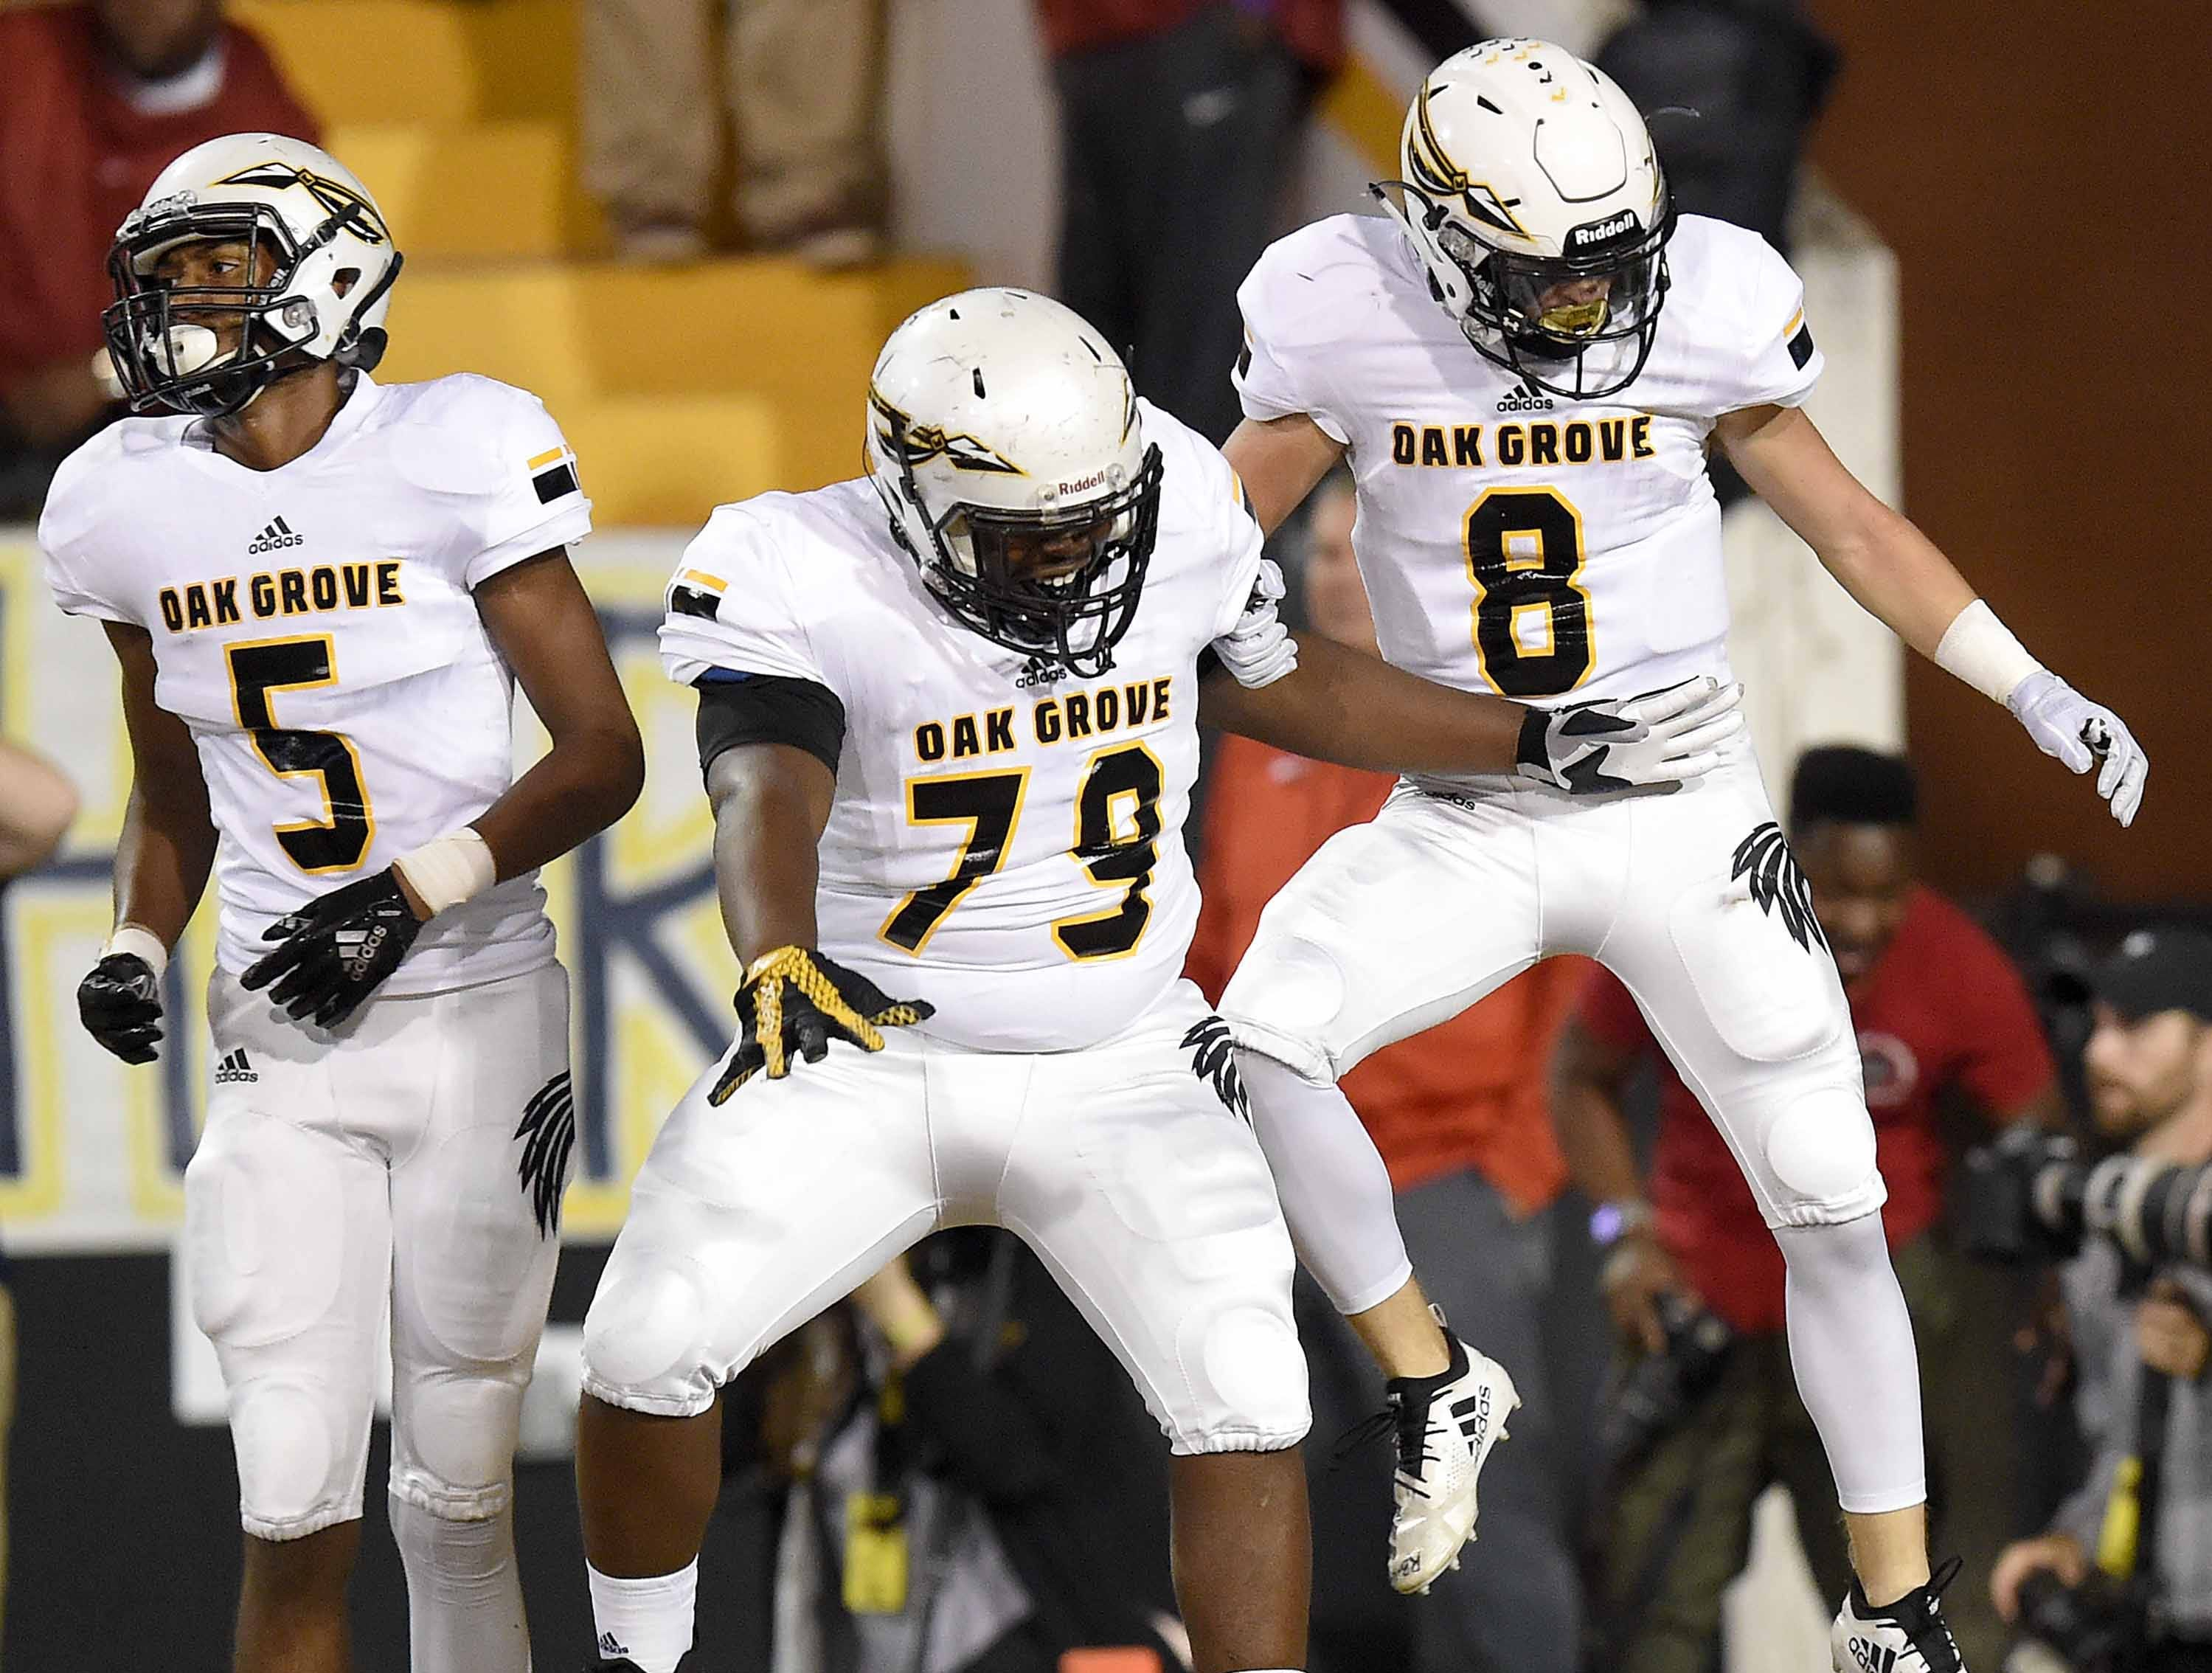 Oak Grove's Liam Breighaupt (8) celebrates against Horn Lake with Taurese Sibley (79) and Tavion Smith (5) on Friday, November 20, 2018, in the MHSAA BlueCross BlueShield Gridiron Classic High School Football Championships in M.M. Roberts Stadium on the University of Southern Mississippi campus in Hattiesburg, Miss.